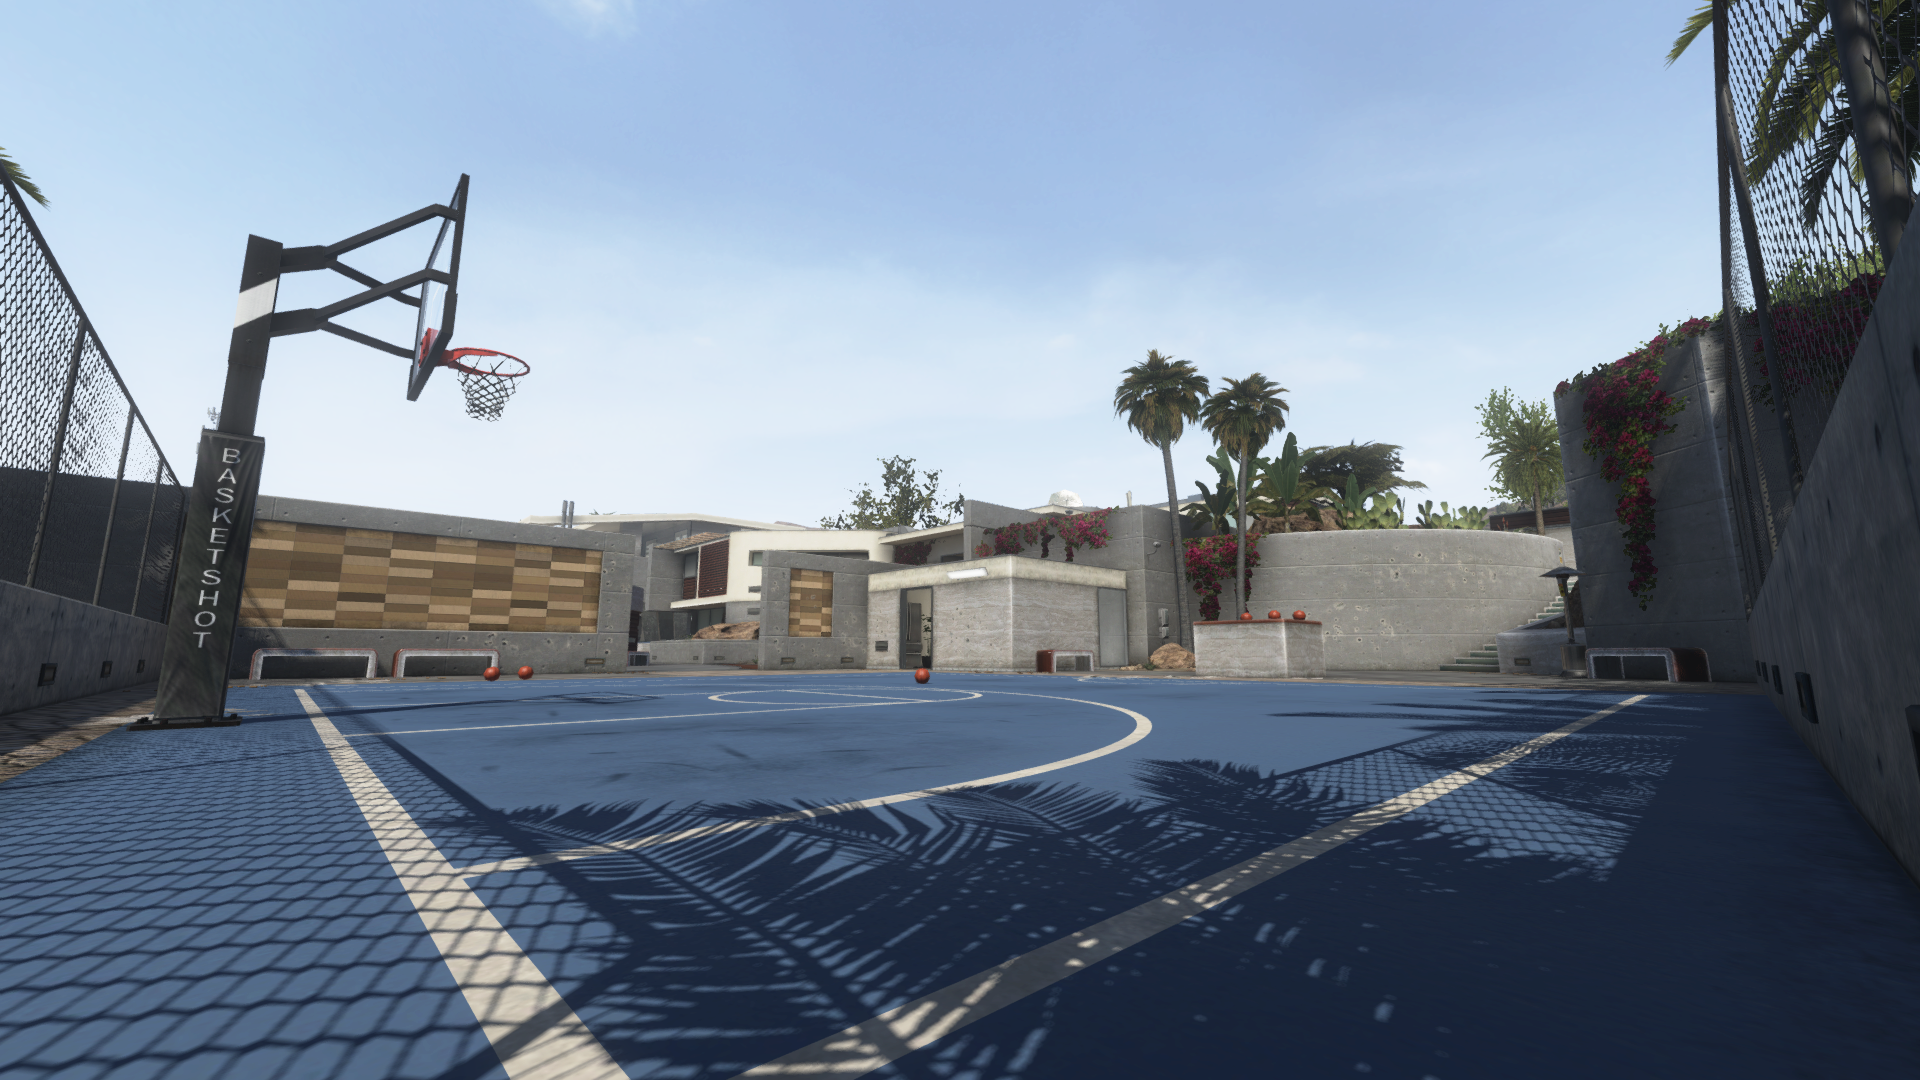 Raid basketball court BOII.png - Basketball Court PNG HD